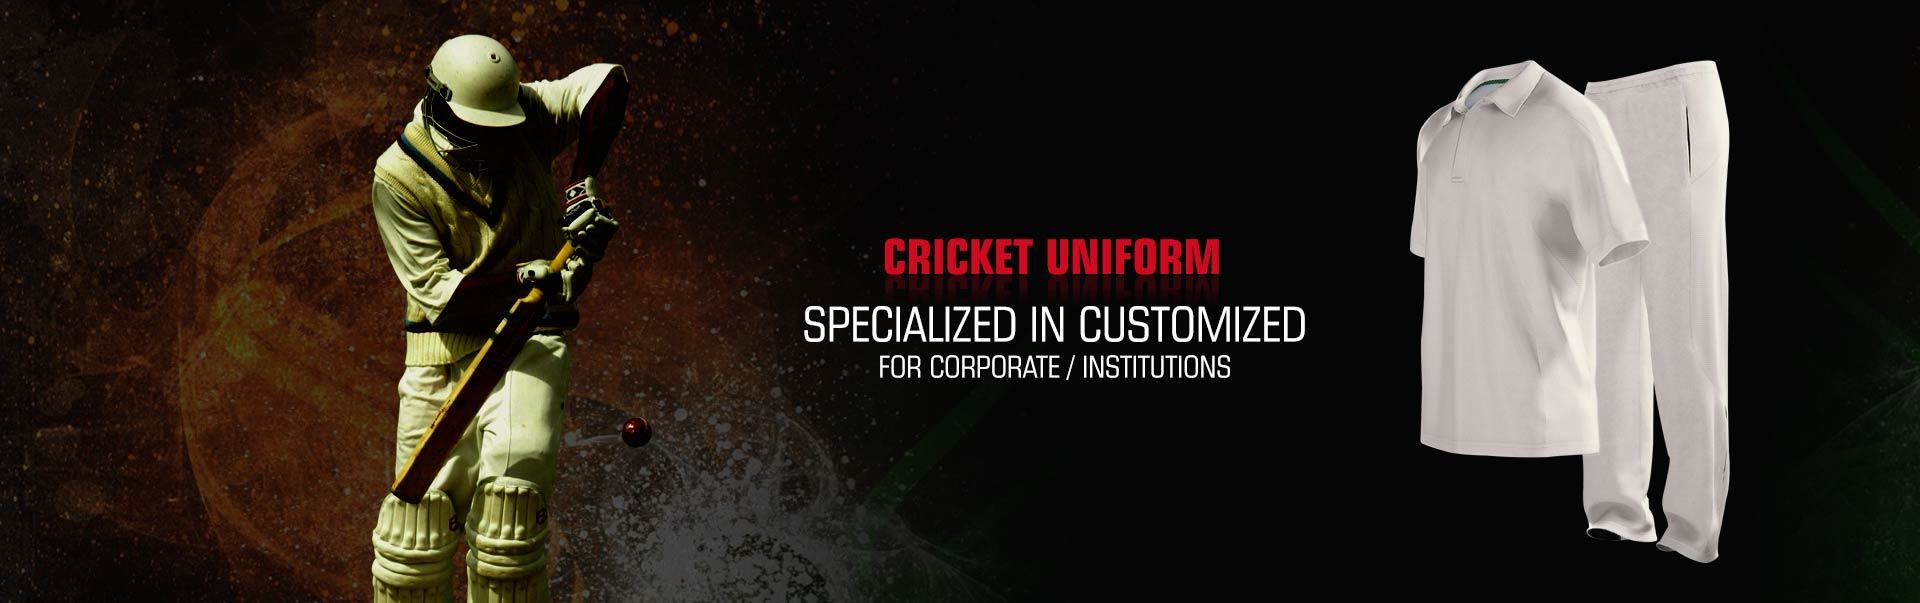 Cricket Uniform Wholesaler, Suppliers in Arlington